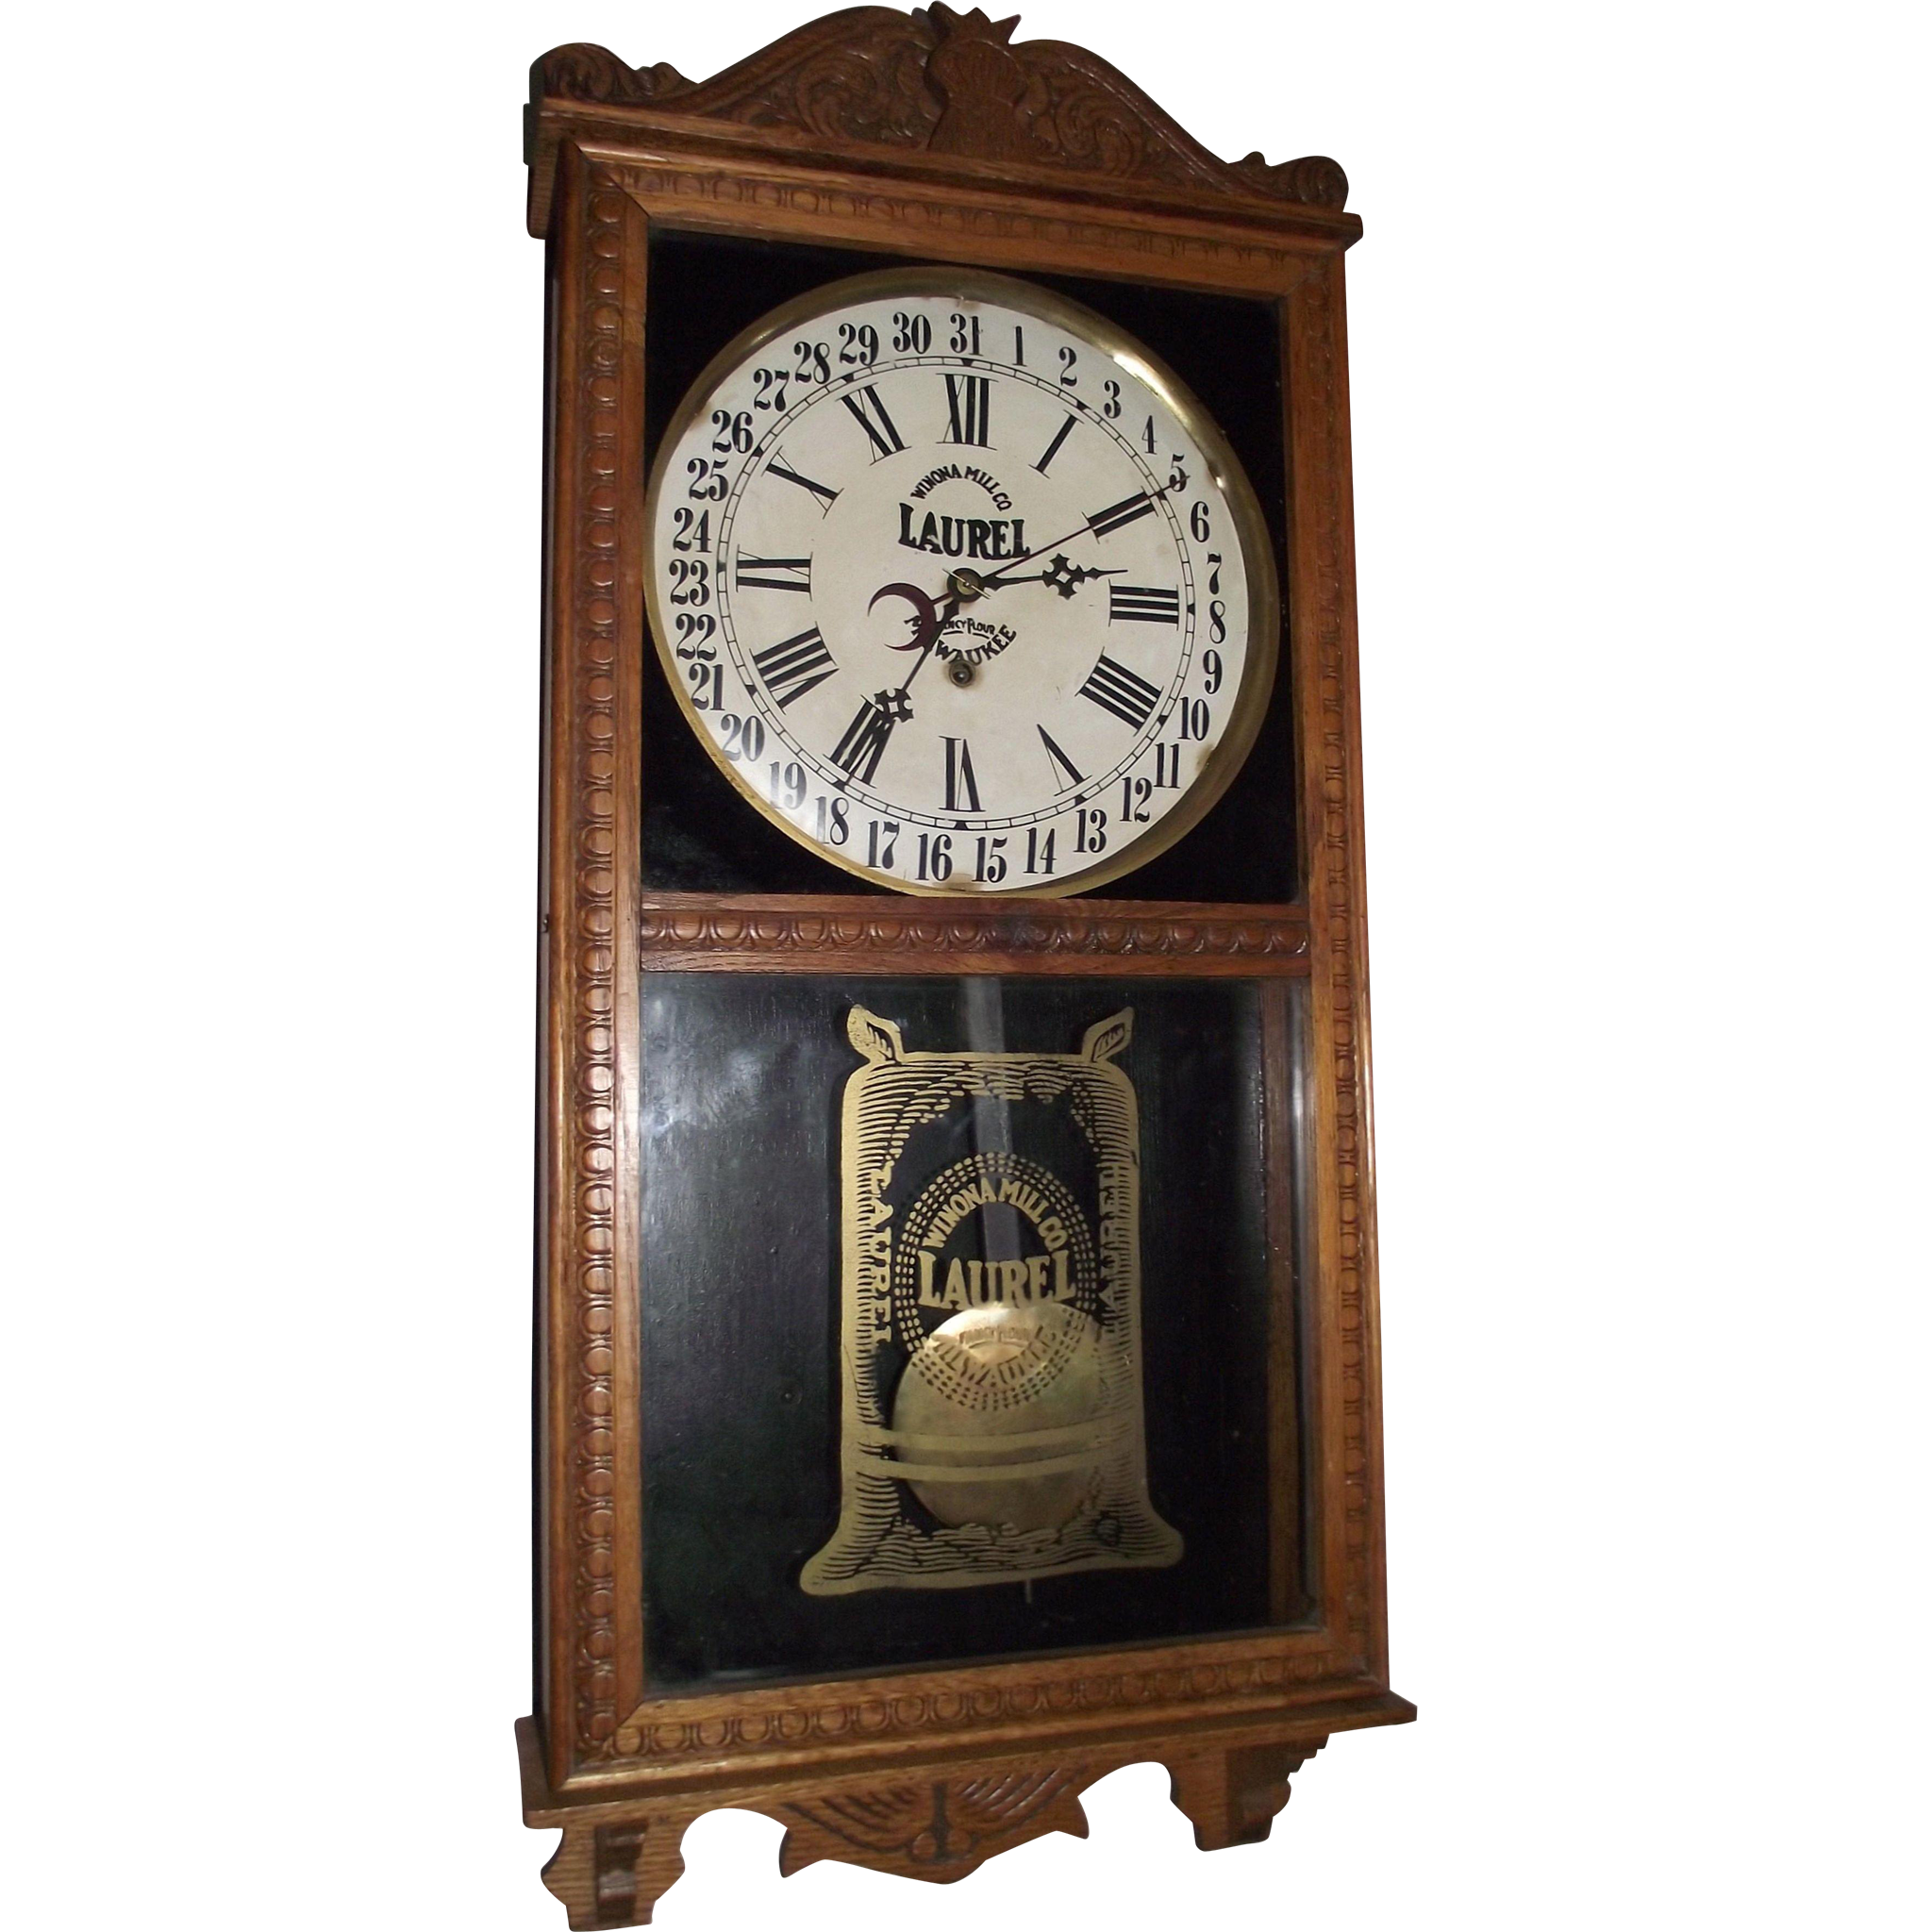 """""""LAUREL Fancy Flour"""" General Store Advertising Clock from the """"Winona Mill Co. in Milwaukee"""" Circa 1925 !!!"""